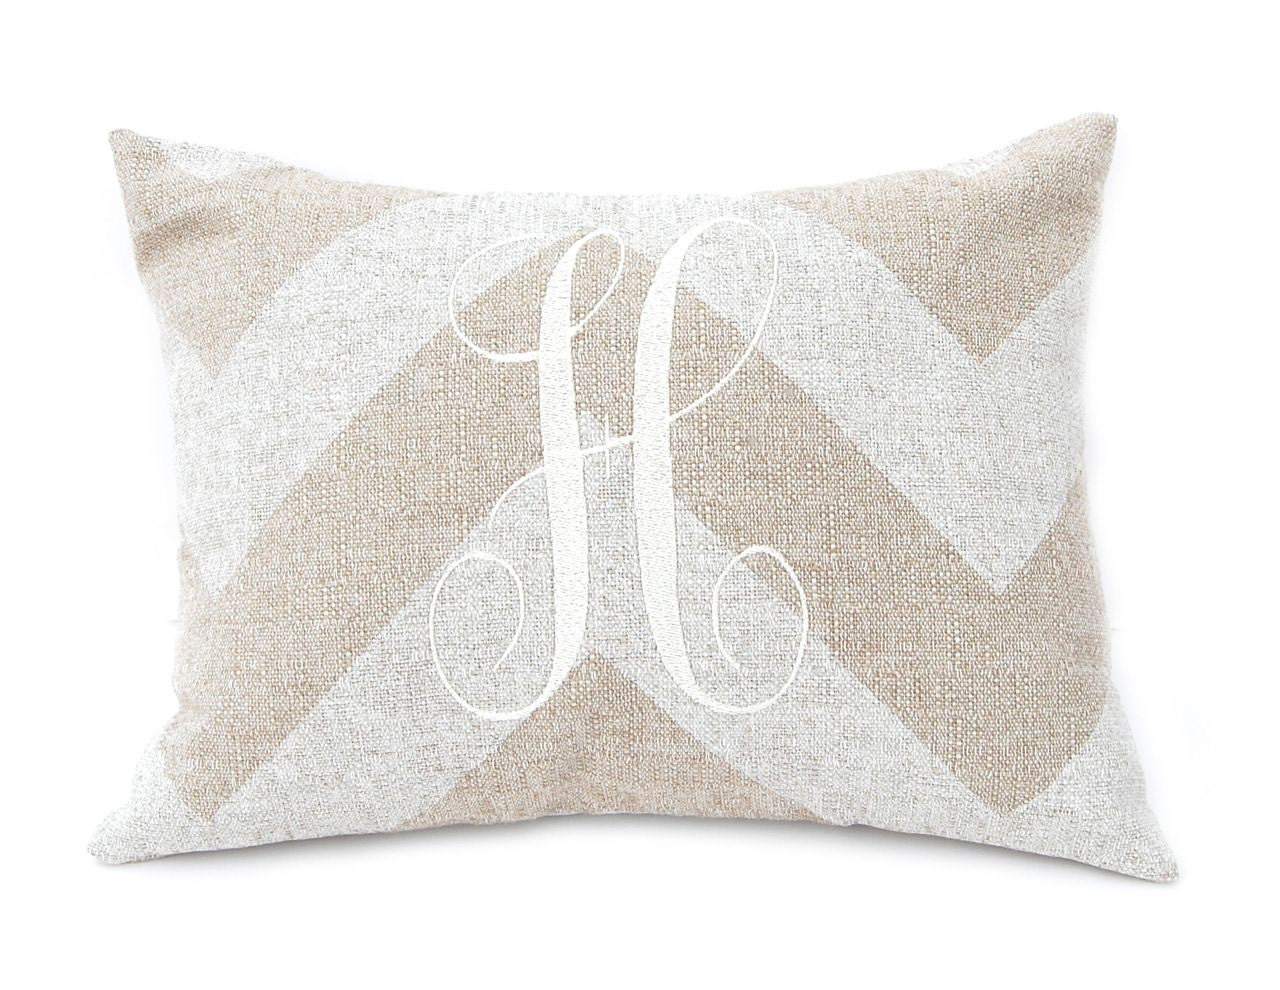 Monogram Throw Pillow Etsy : Monogrammed Decorative Throw Pillow Cover by FestiveHomeDecor